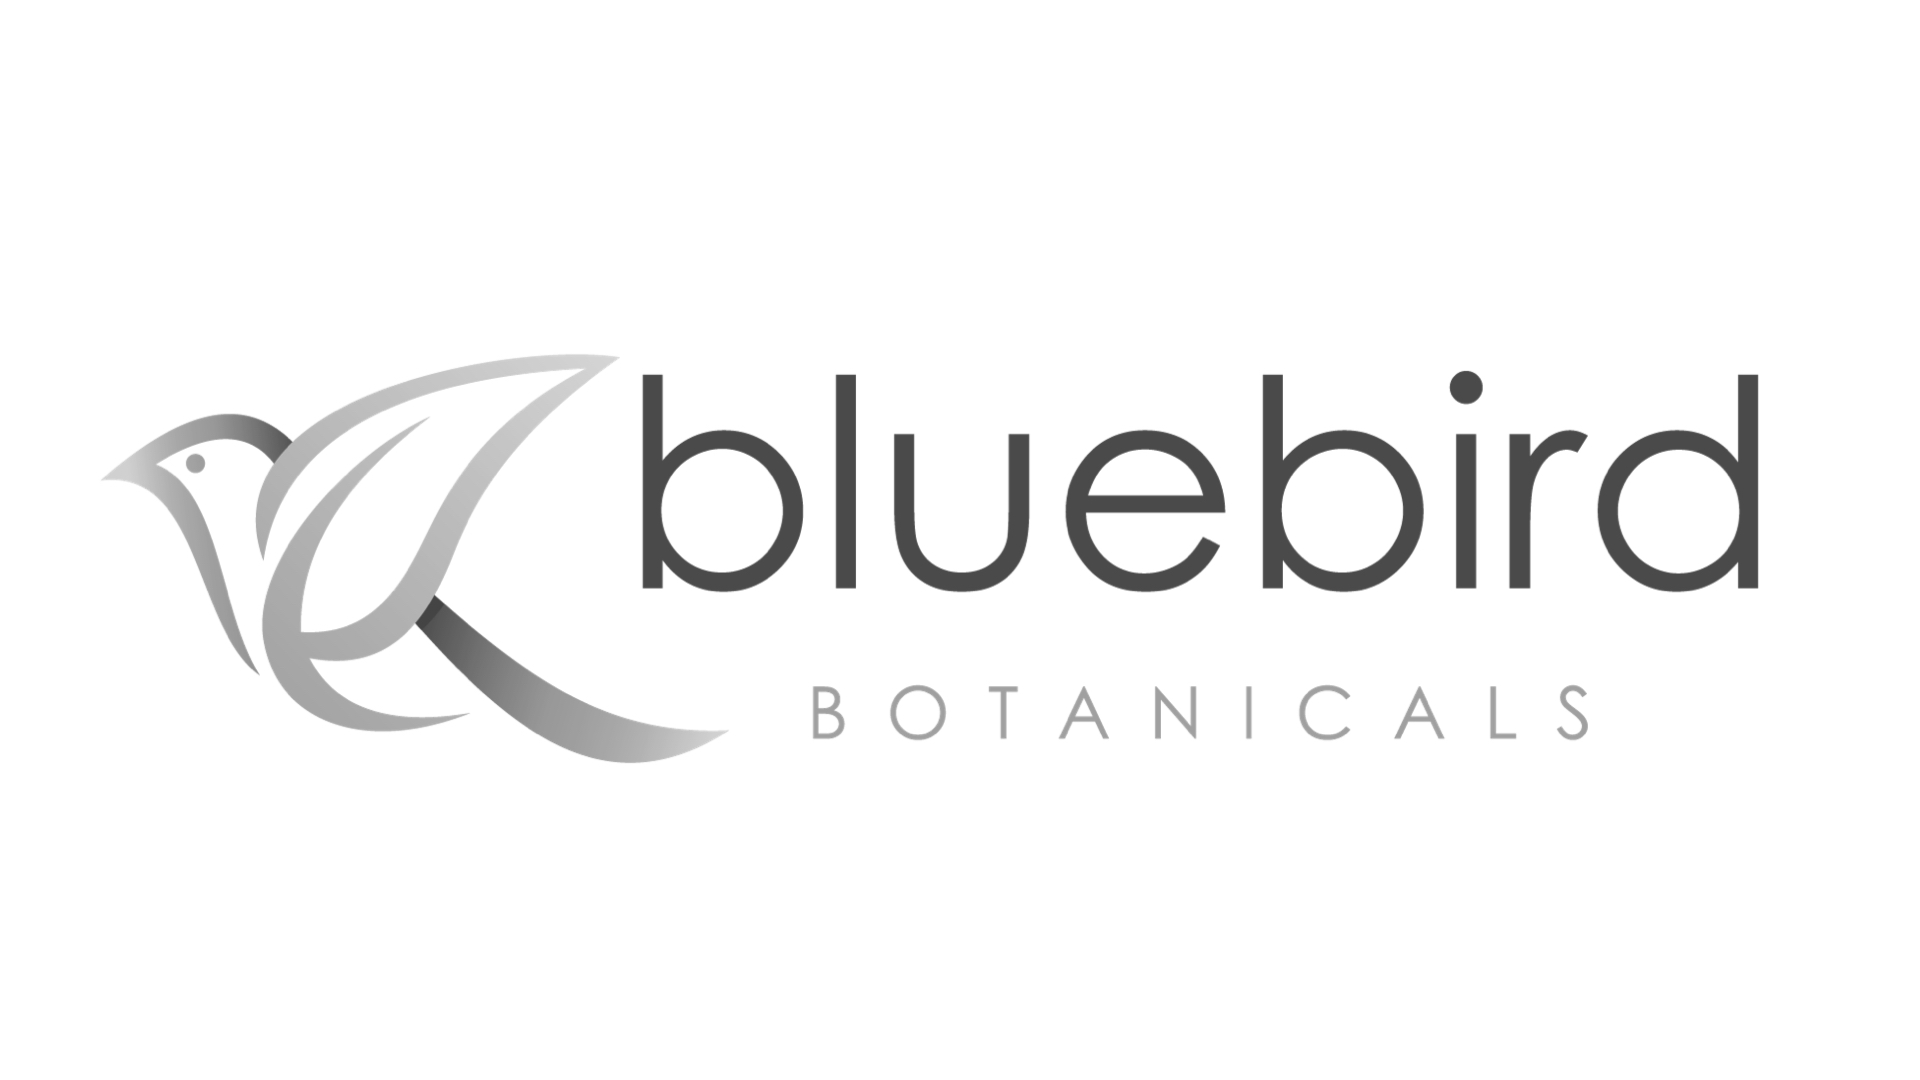 Bluebird homepage logo.001.jpeg